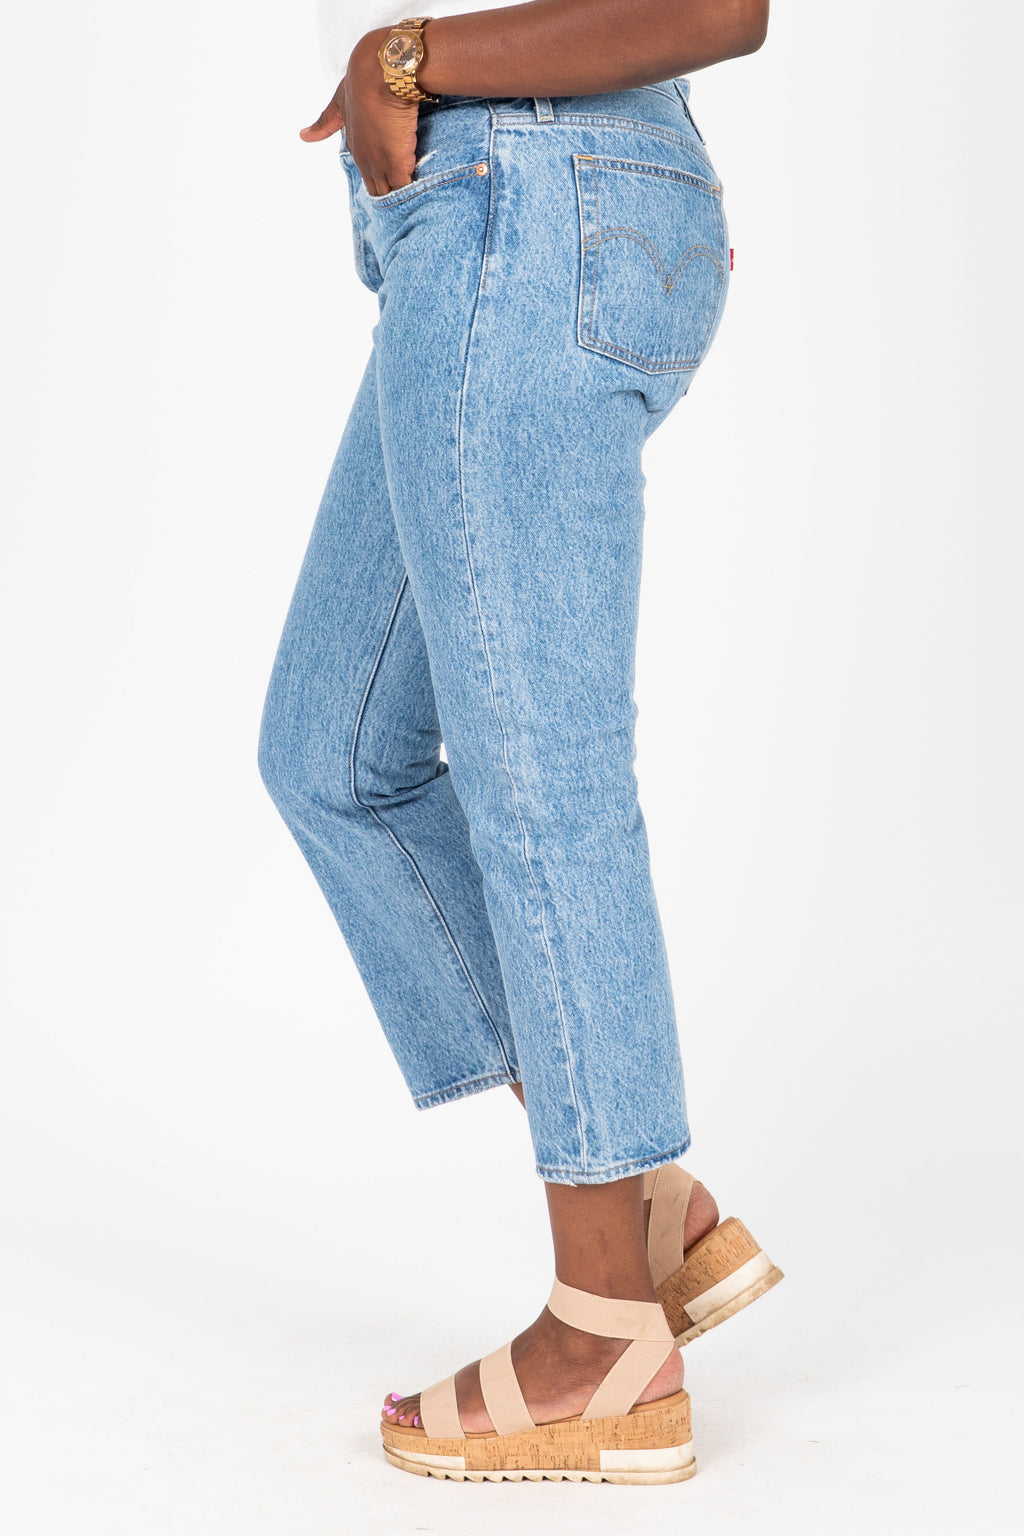 Levi's: Wedgie Fit Straight Jeans in Luxor Lanes Medium Wash, studio shoot; side view